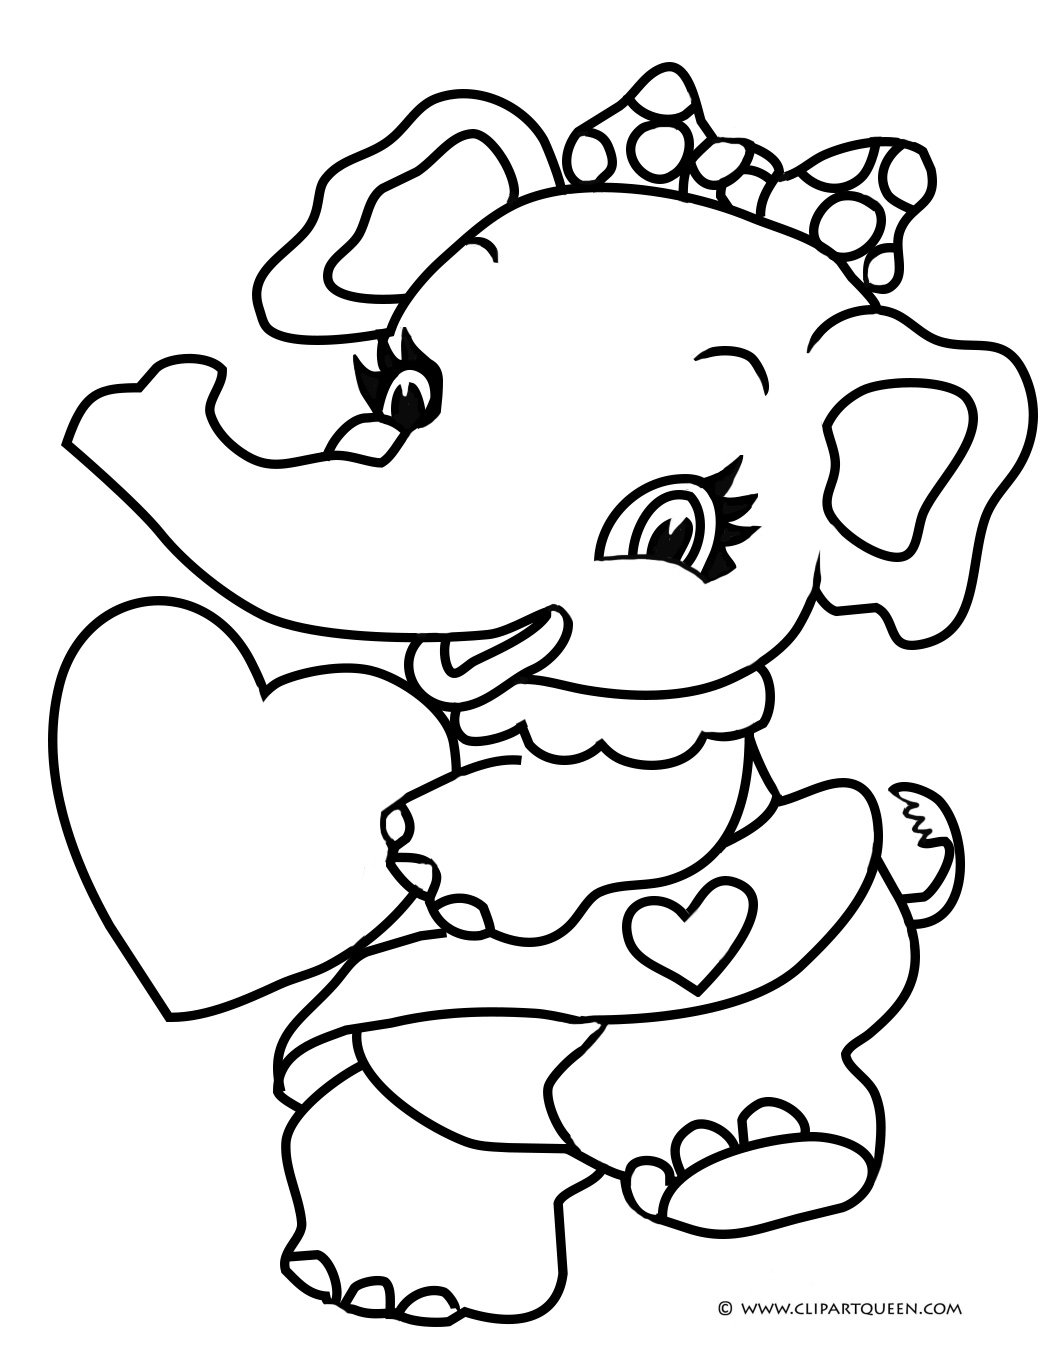 elephants face drawing at getdrawings com free for personal use